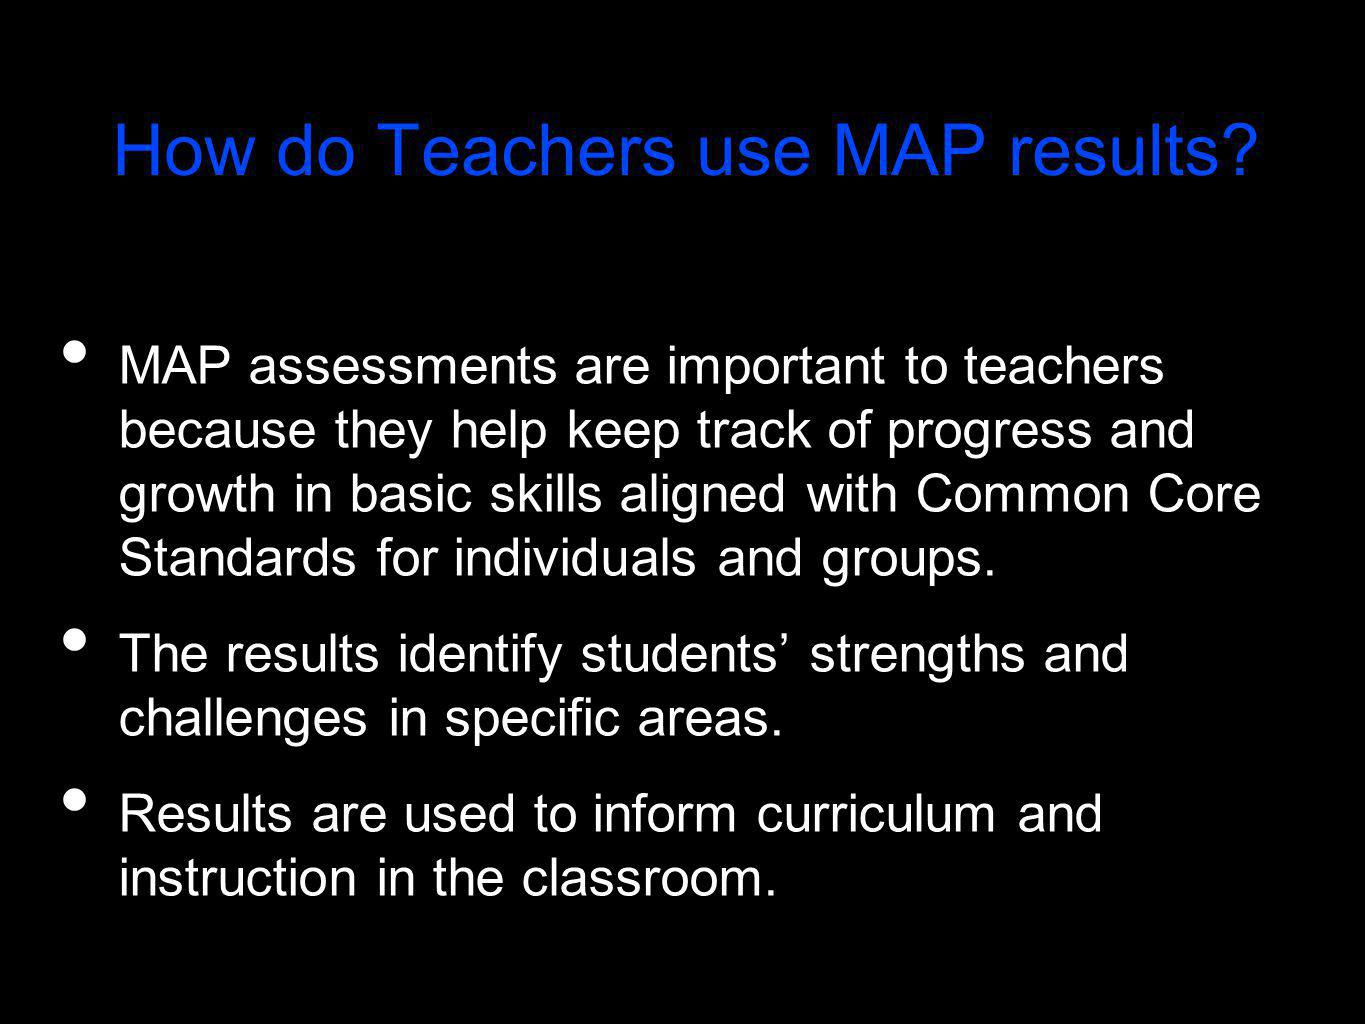 How do Teachers use MAP results